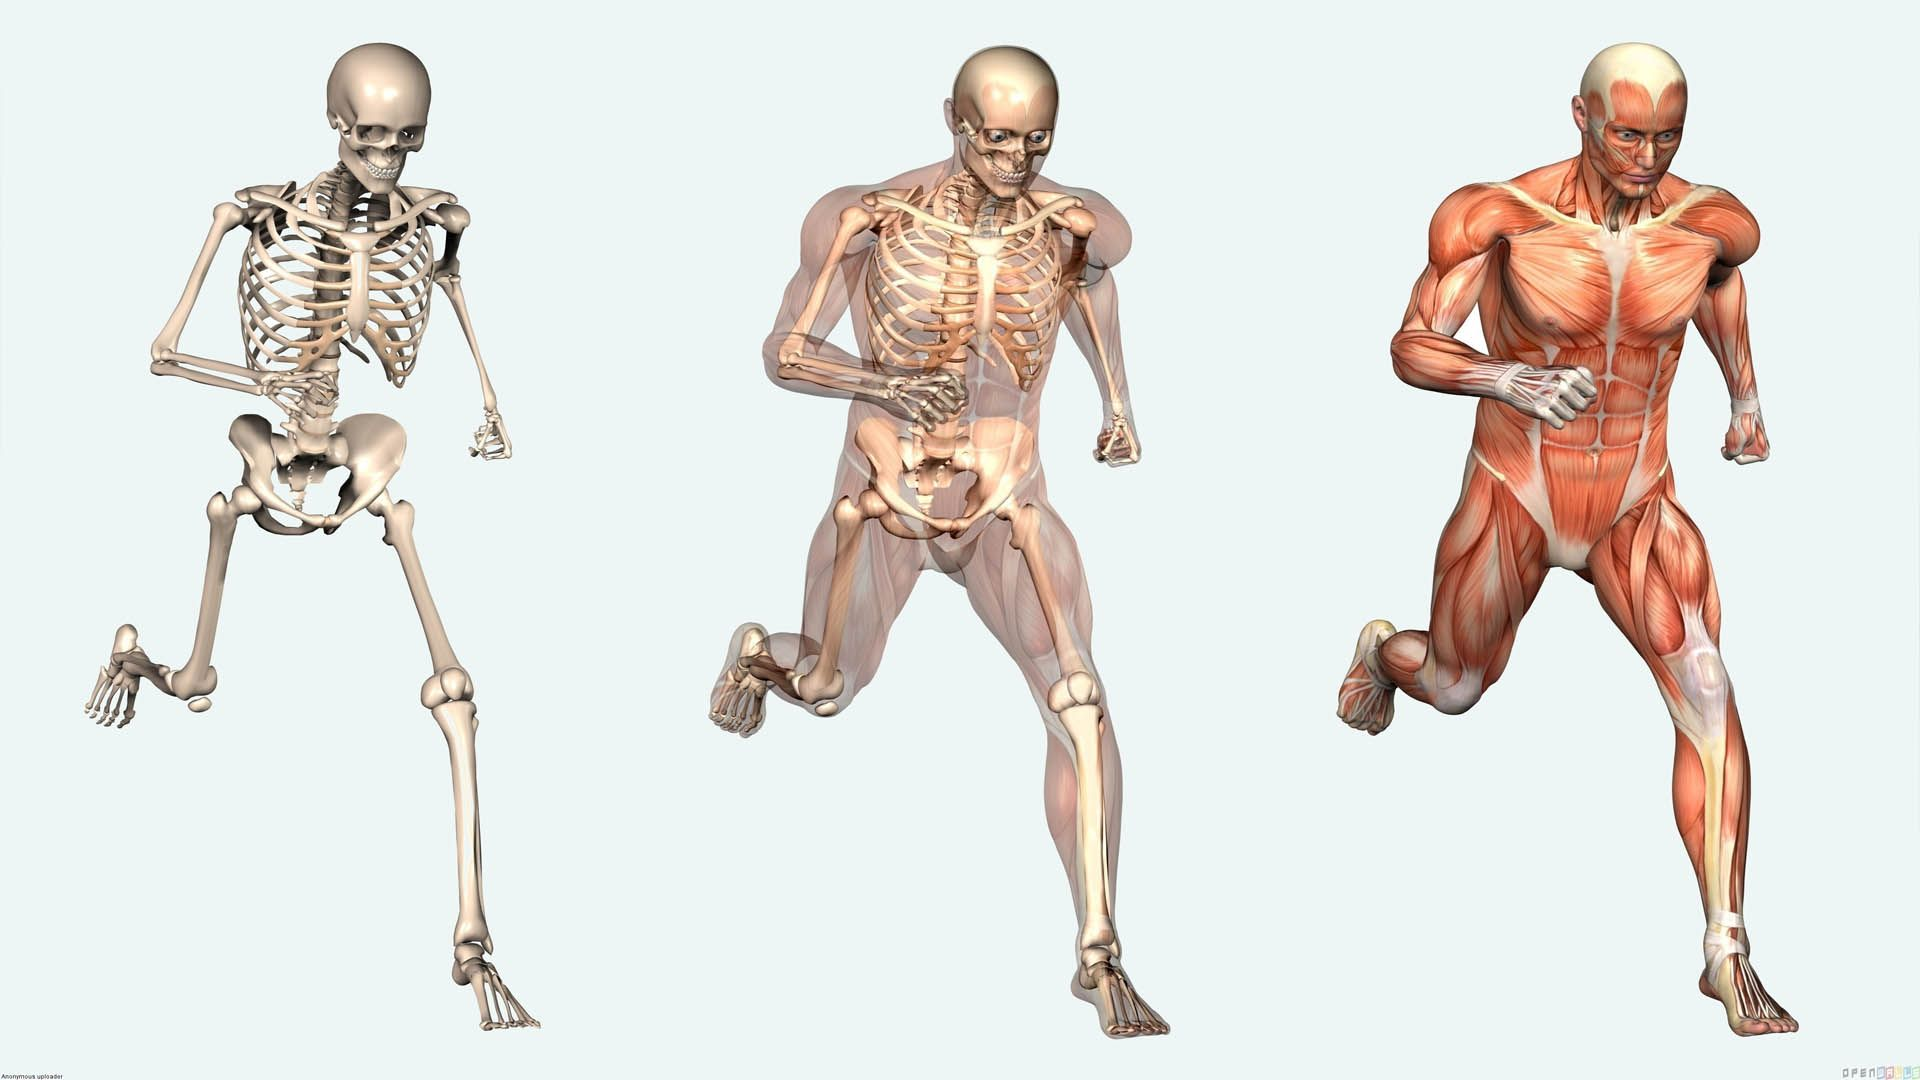 Learn about the human body http://www.keepingitkinky.net/resources/human-body/